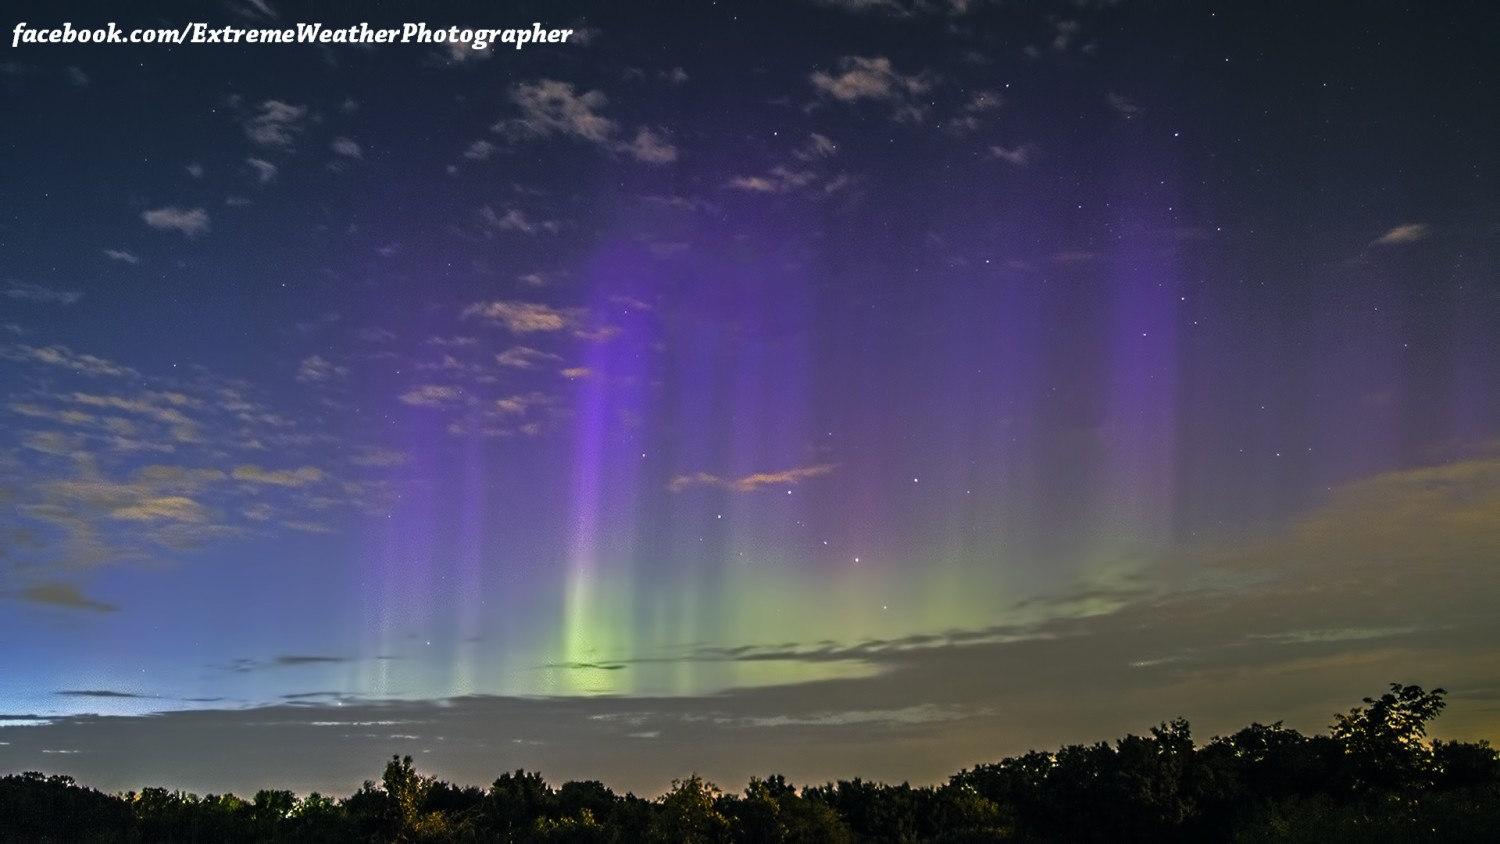 View larger. | Aurora borealis or northern lights seen over Wisconsin on June 6, 2013, as captured by Jeremy Friebel.